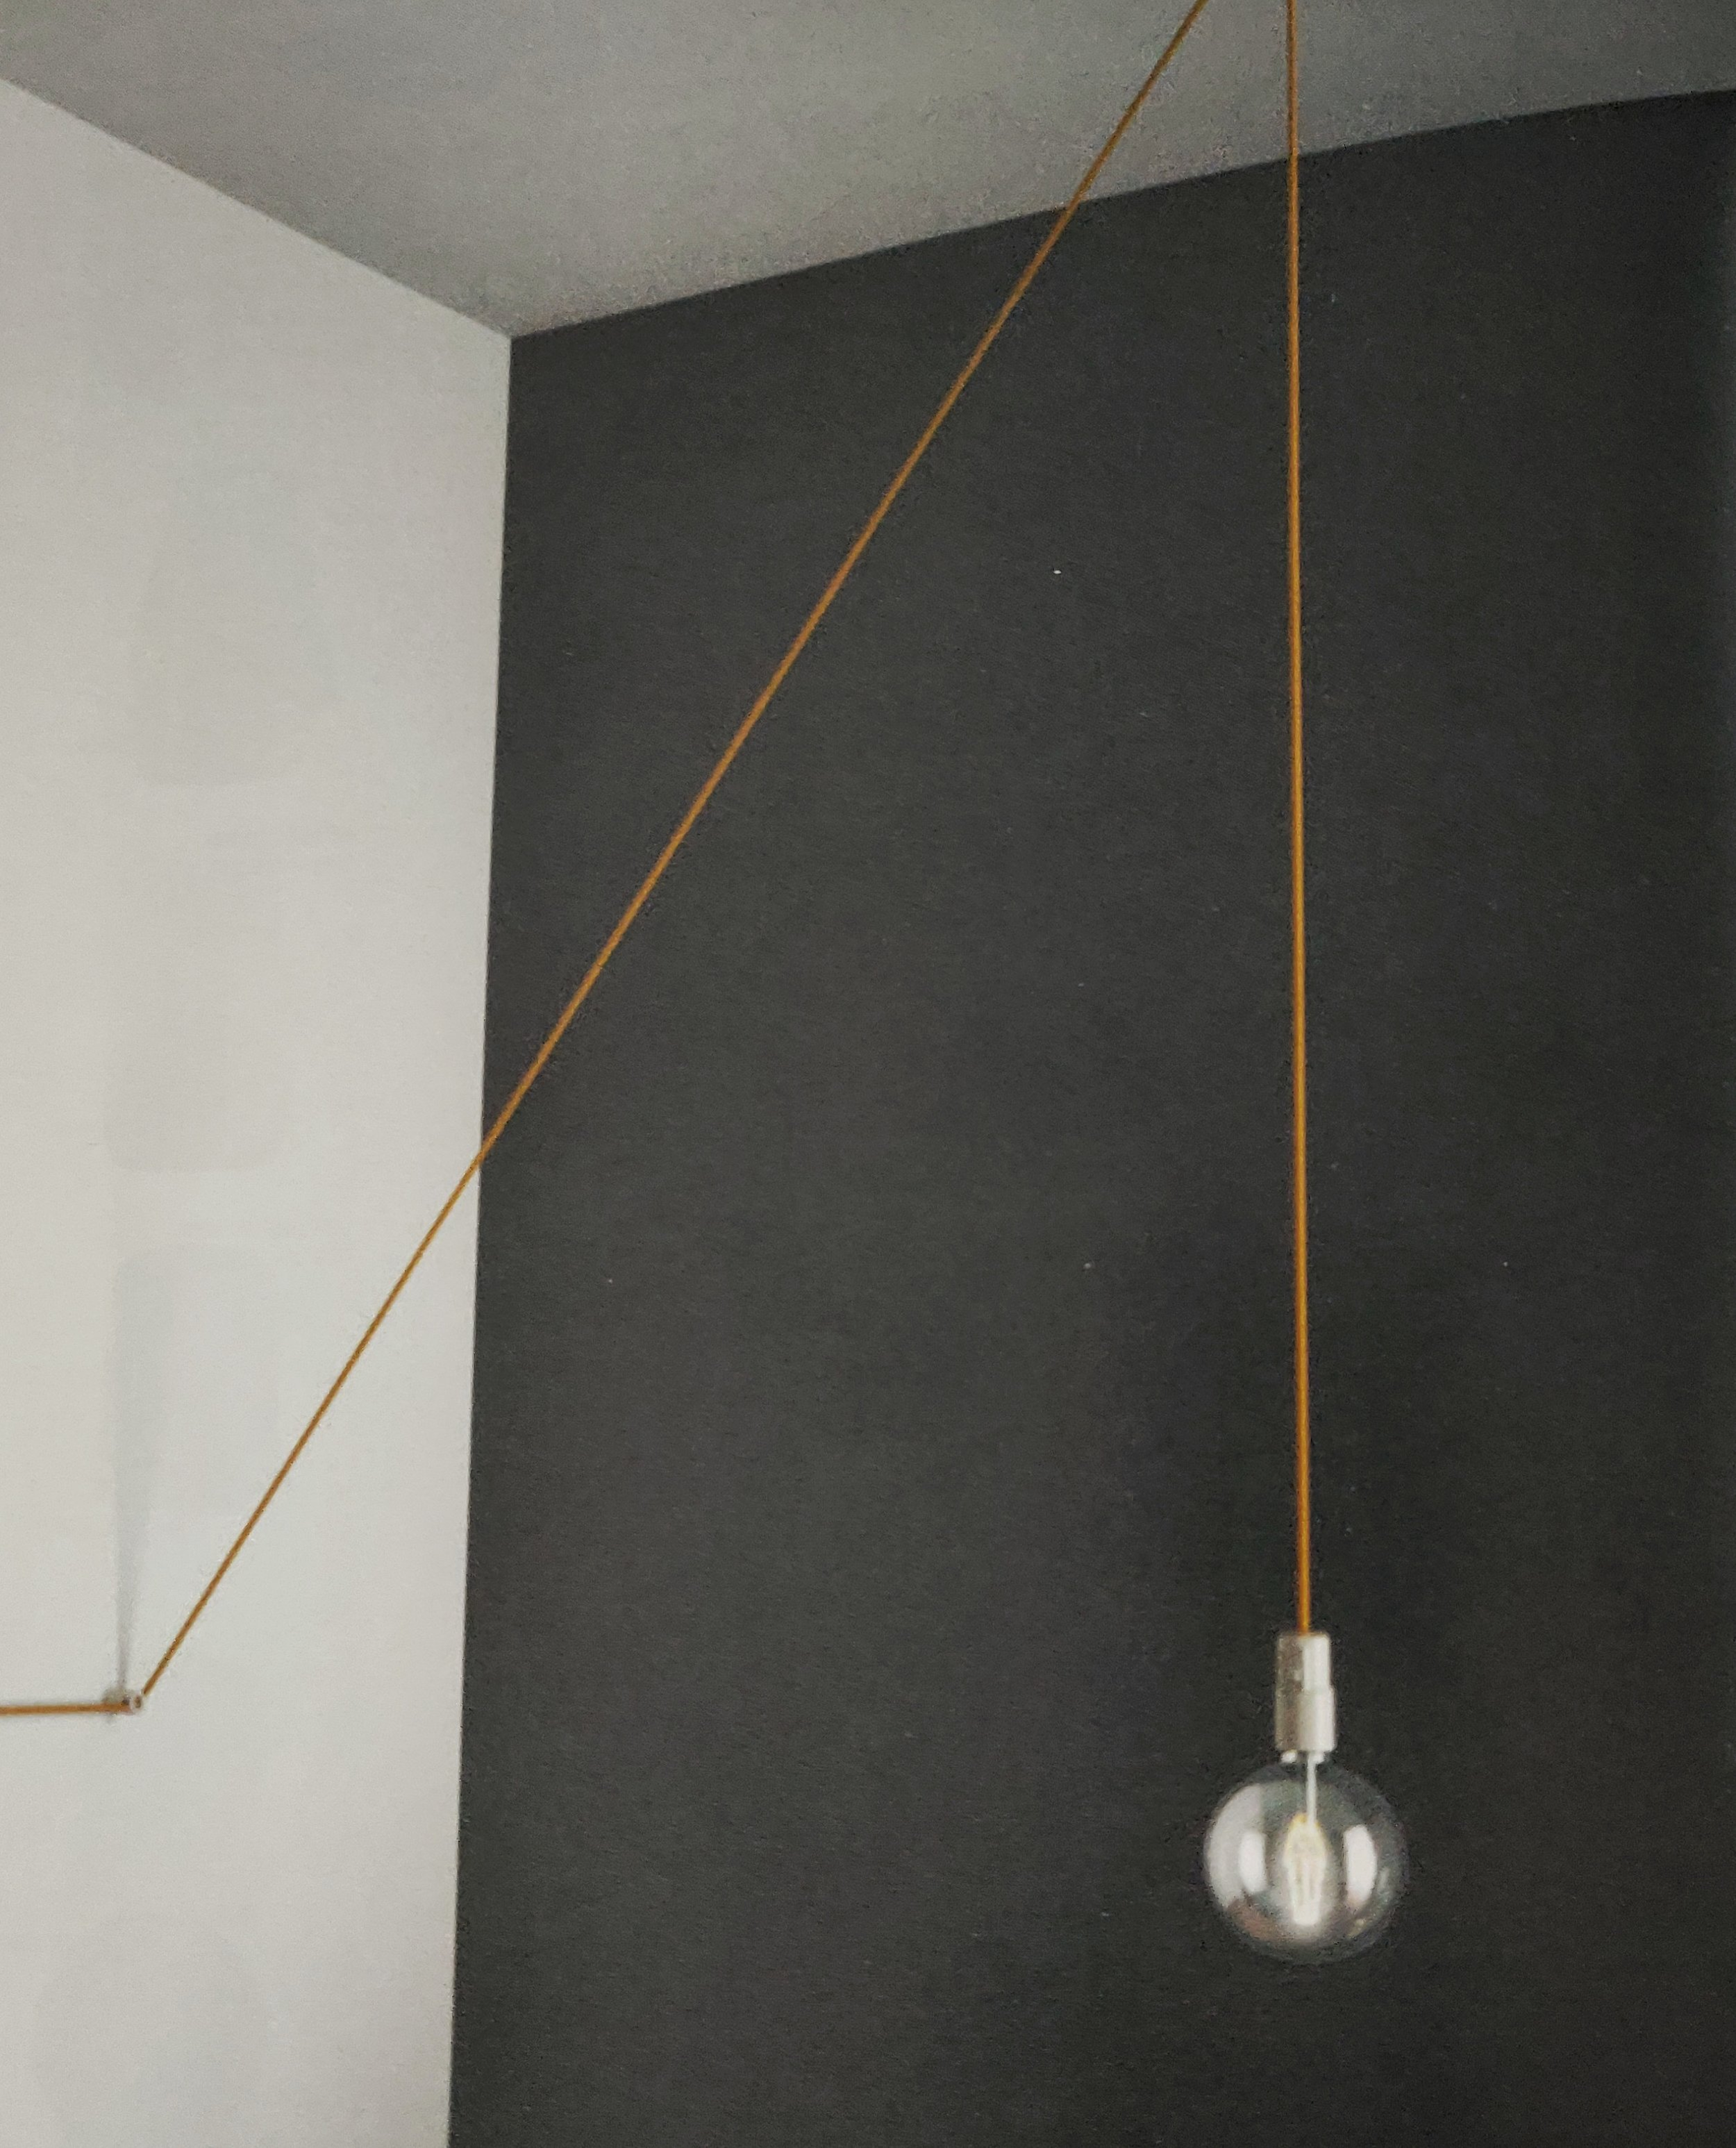 The lighting cable can create angular designs and set the ambience of the room.